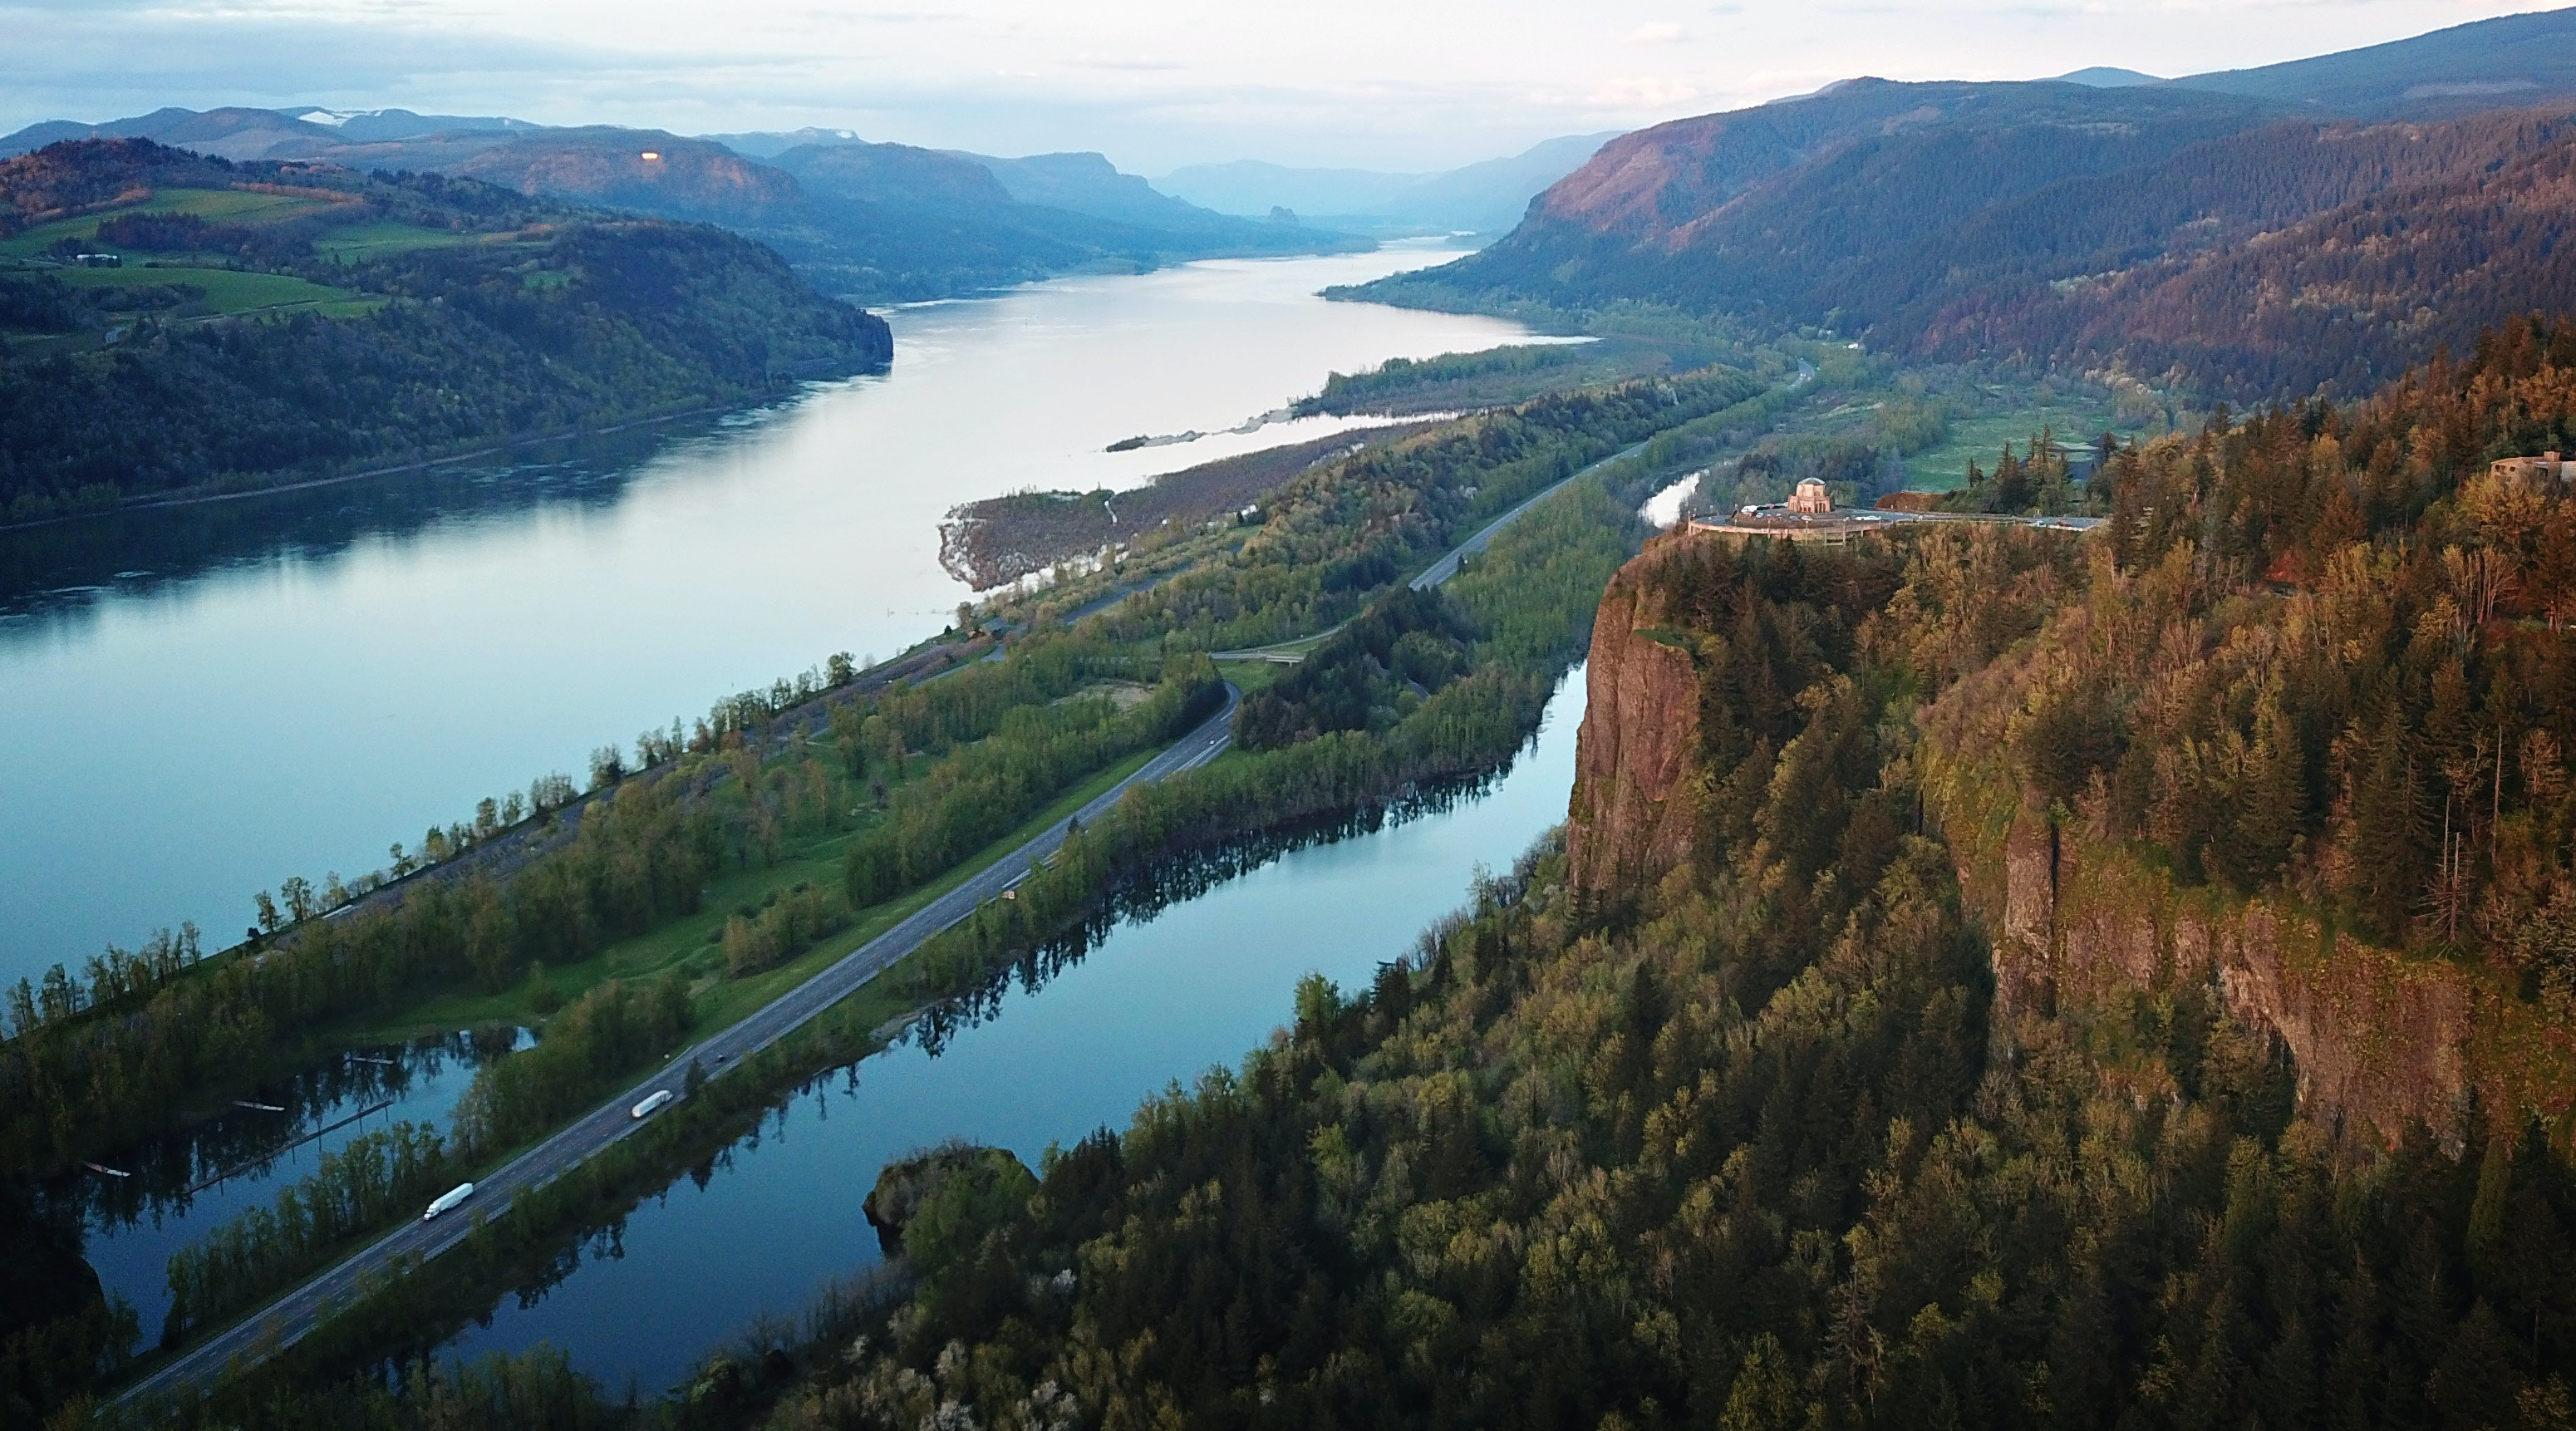 Aerial View of River · Free Stock Photo